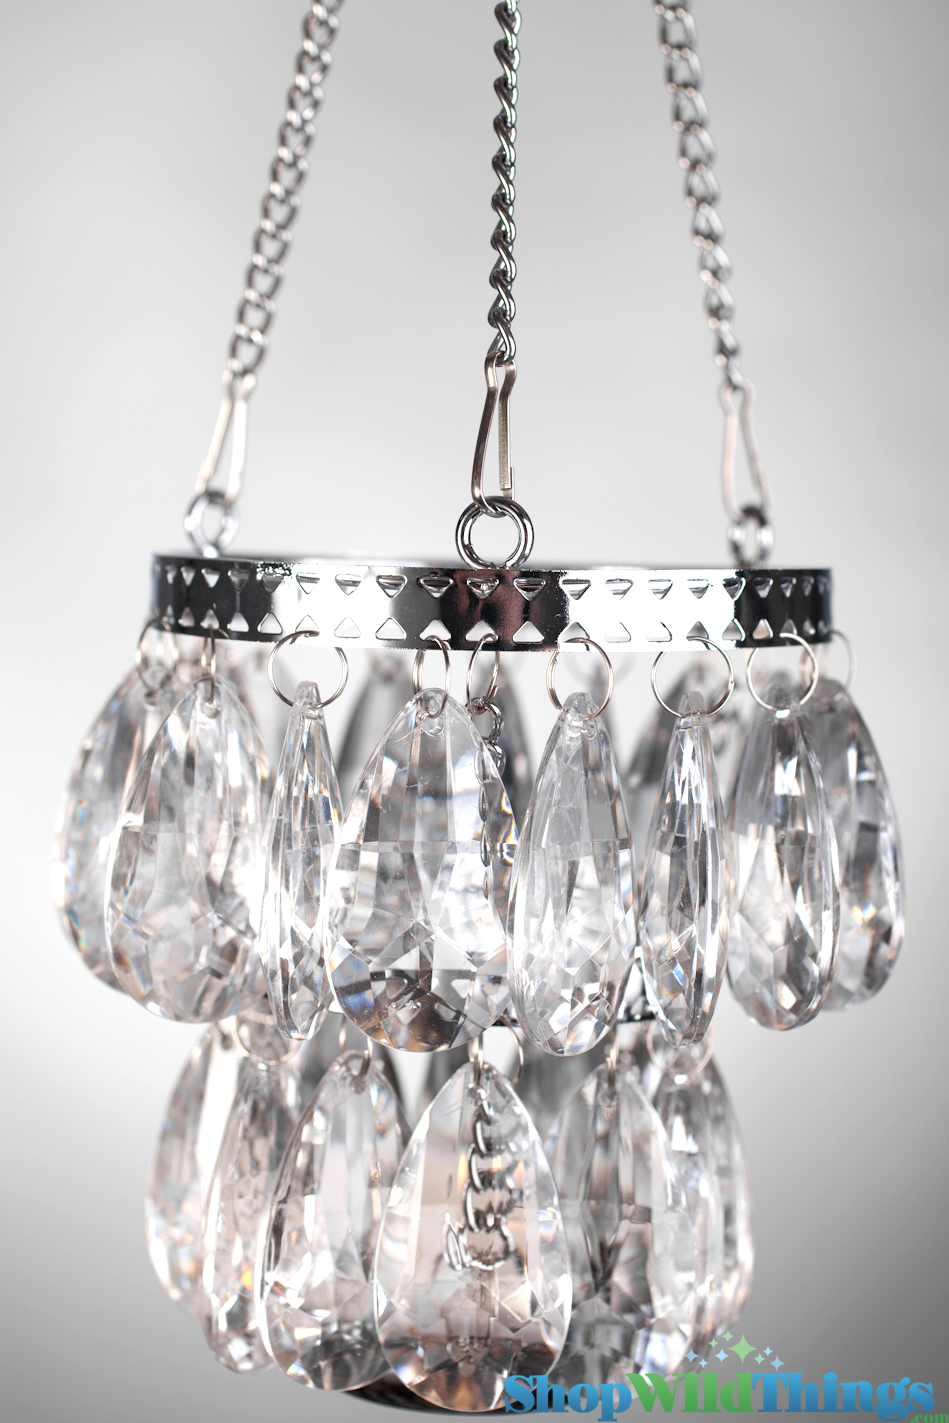 Hanging Crystal Candle Holders - Lynnie - 2 Tiers, 5""